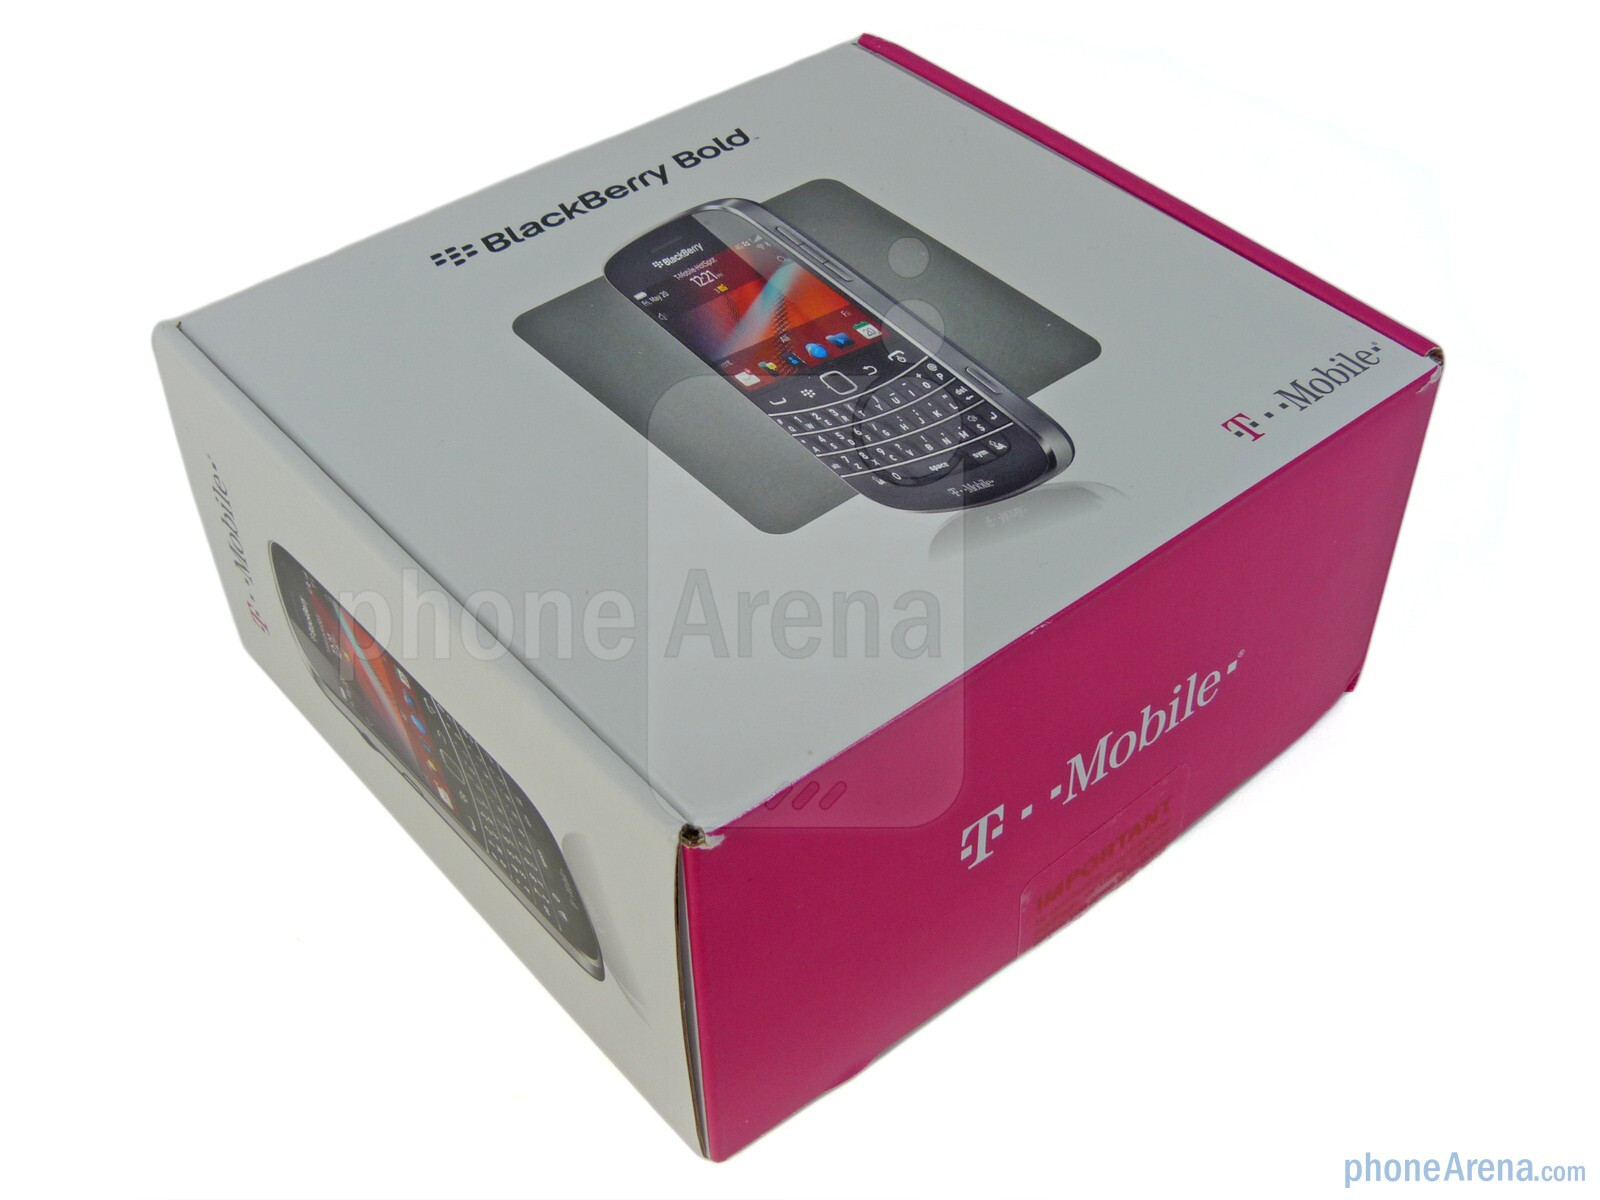 Rim blackberry bold 9900 review reheart Choice Image